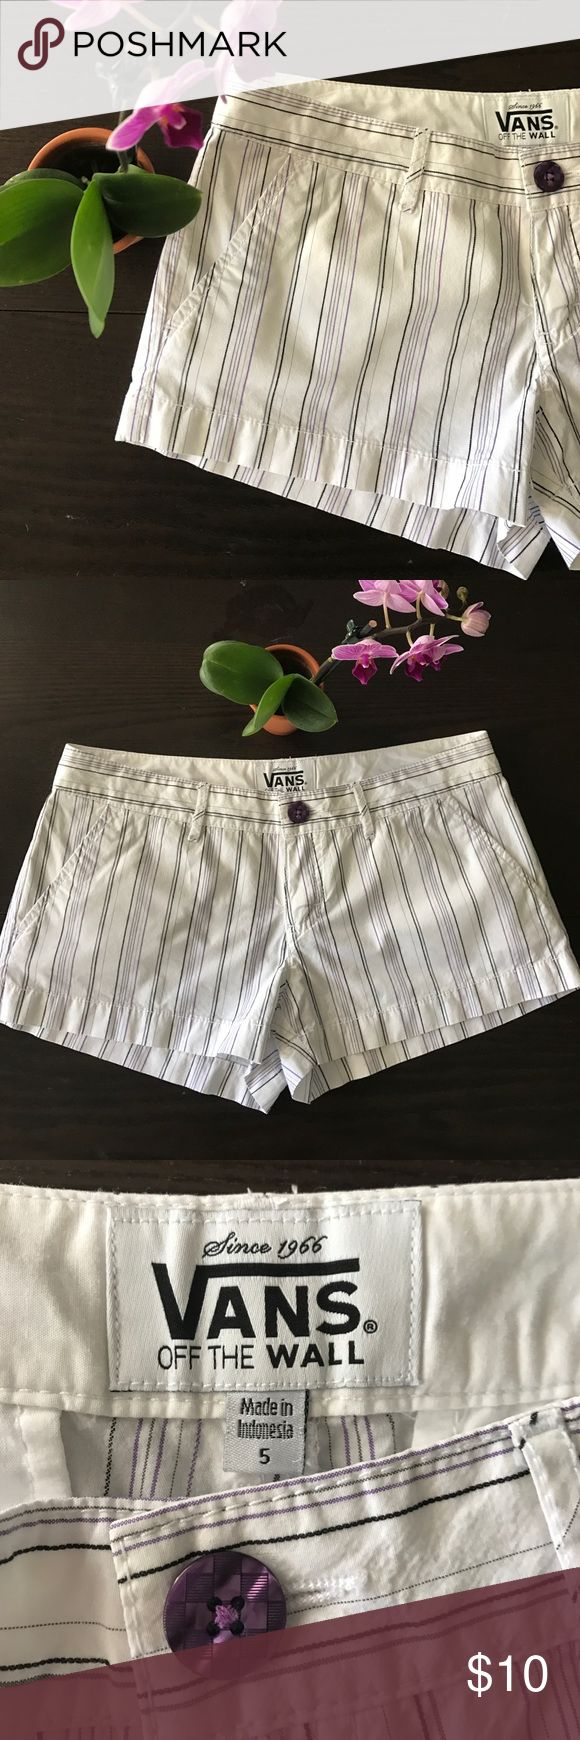 """{Vans} """"Walk This Way"""" Shorts Walk This Way Shorts by Vans, in white with purple and black stripes. Size 5. 2"""" inseam. NWOT. Are you ready for summer? These babies are! *Guaranteed same or next day shipping!* *BUNDLE for a discount!* Vans Shorts"""